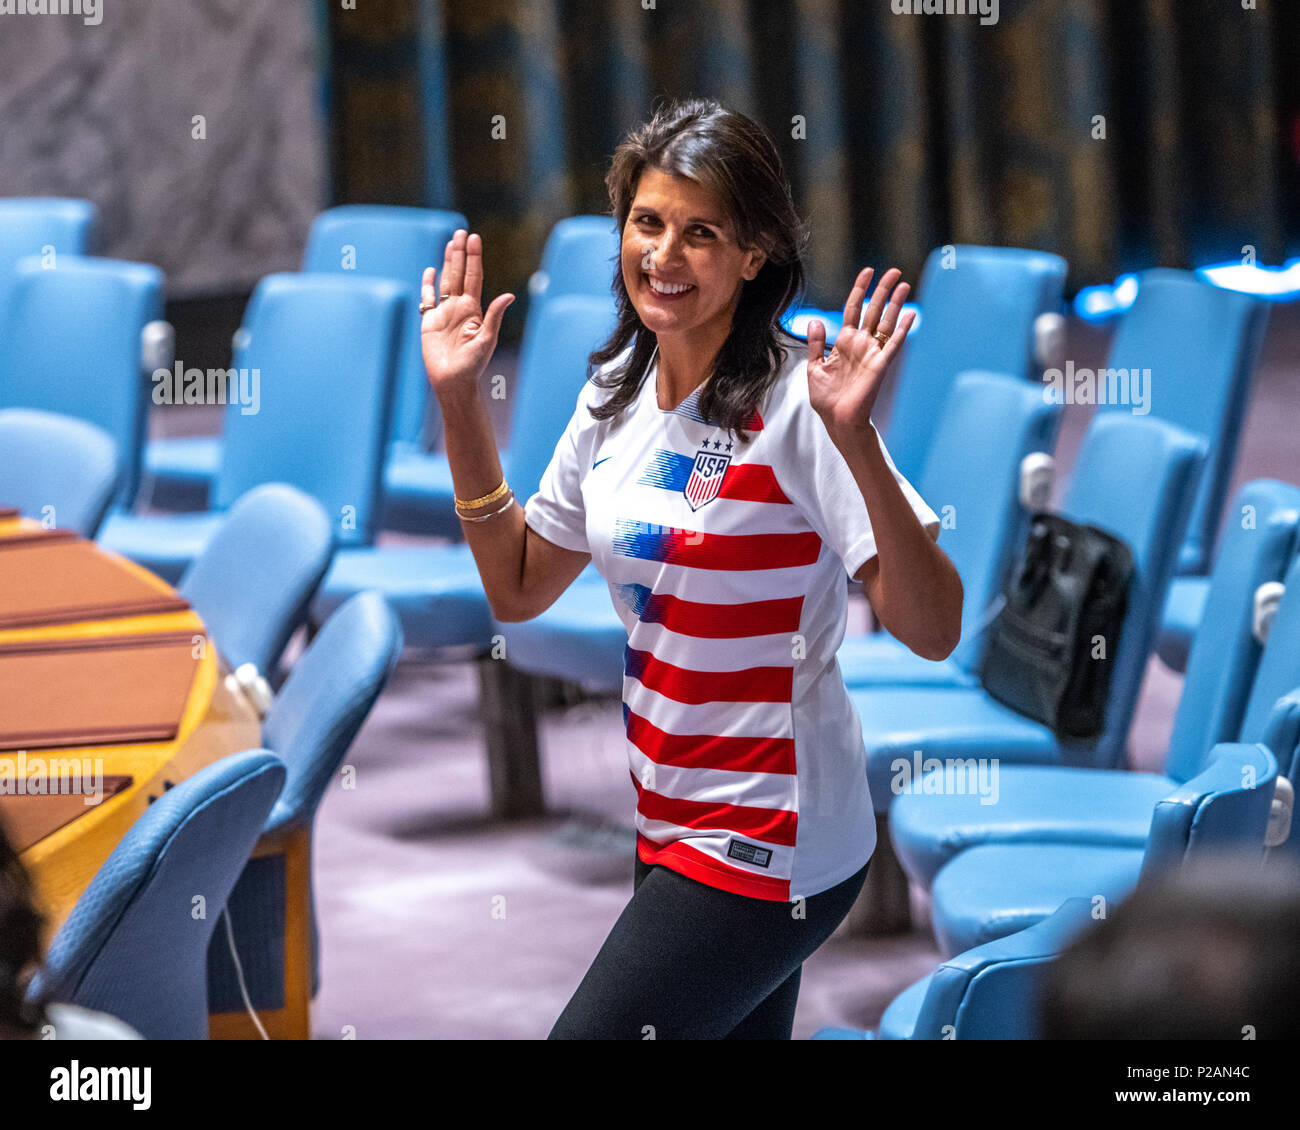 New York, USA, 14 June 2018. US Ambassador to the UN Nikki Haley wears a USA soccer jersey as she  enters the Security Council to attend an event marking the opening day of the 2018 FIFA World Cup, being hosted by the Russian Federation from 14 June to 15 July. Credit: Enrique Shore/Alamy Live News - Stock Image